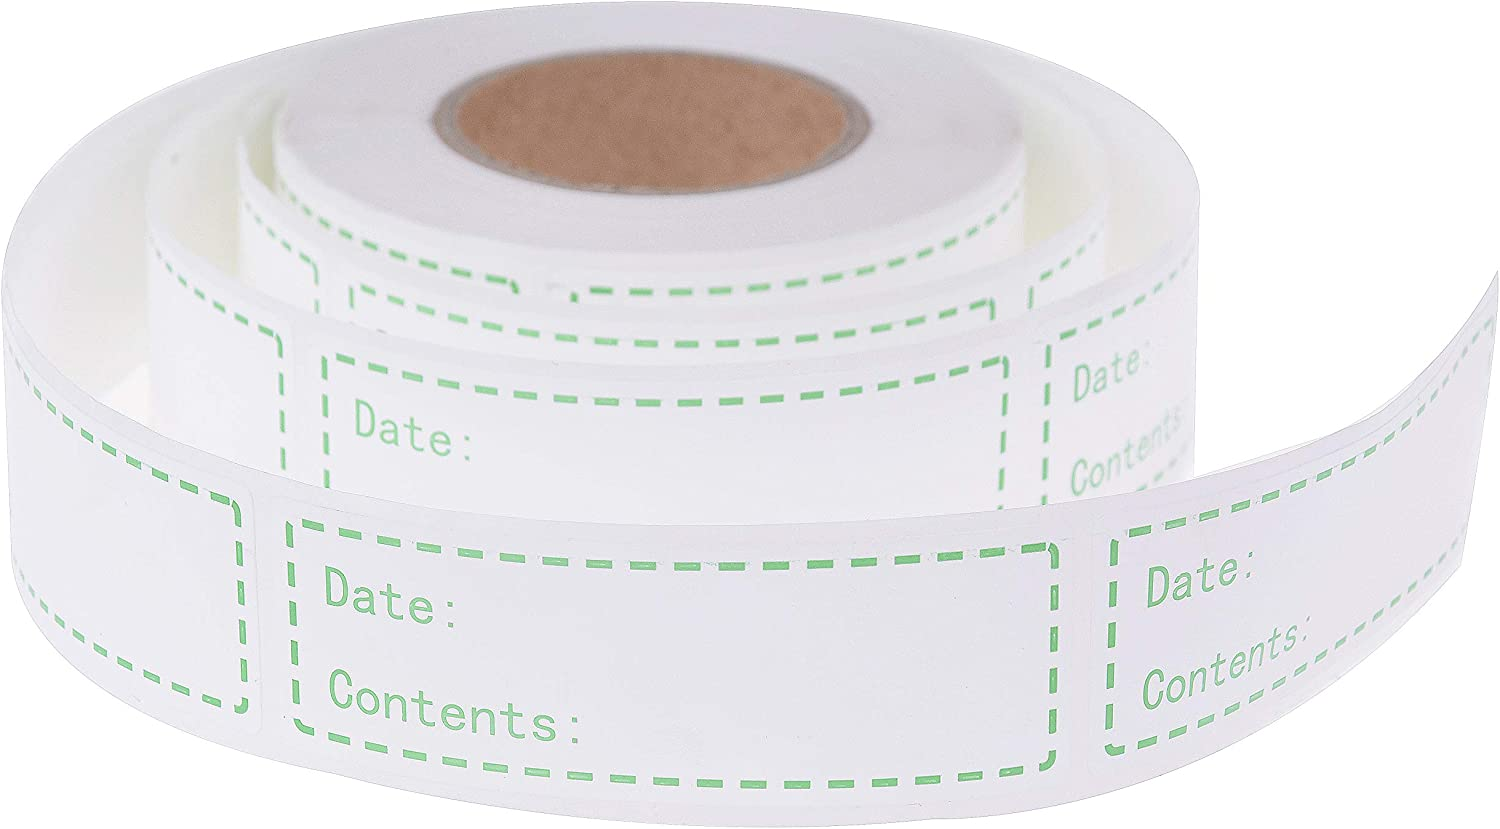 500 Pieces Removable Food Storage Labels Freezer Labels 1x3in Food Storage Stickers Refrigerator Freezer Labels Adhesive Paper Labels(1 Roll,Green)